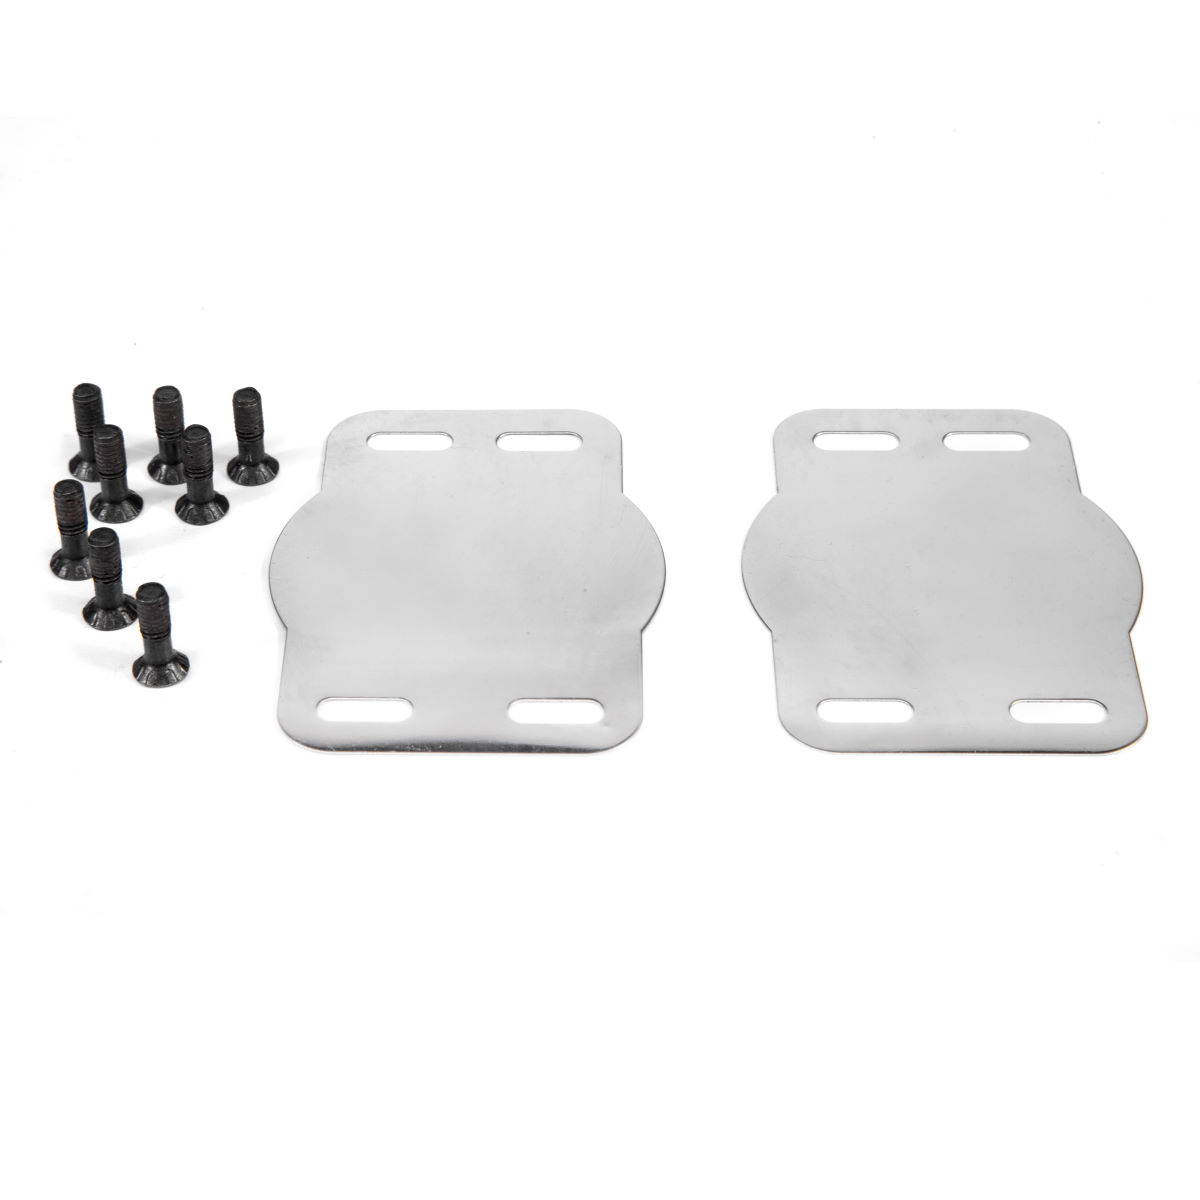 Kit de protection Speedplay pour semelle en carbone - Taille unique Gris Cales